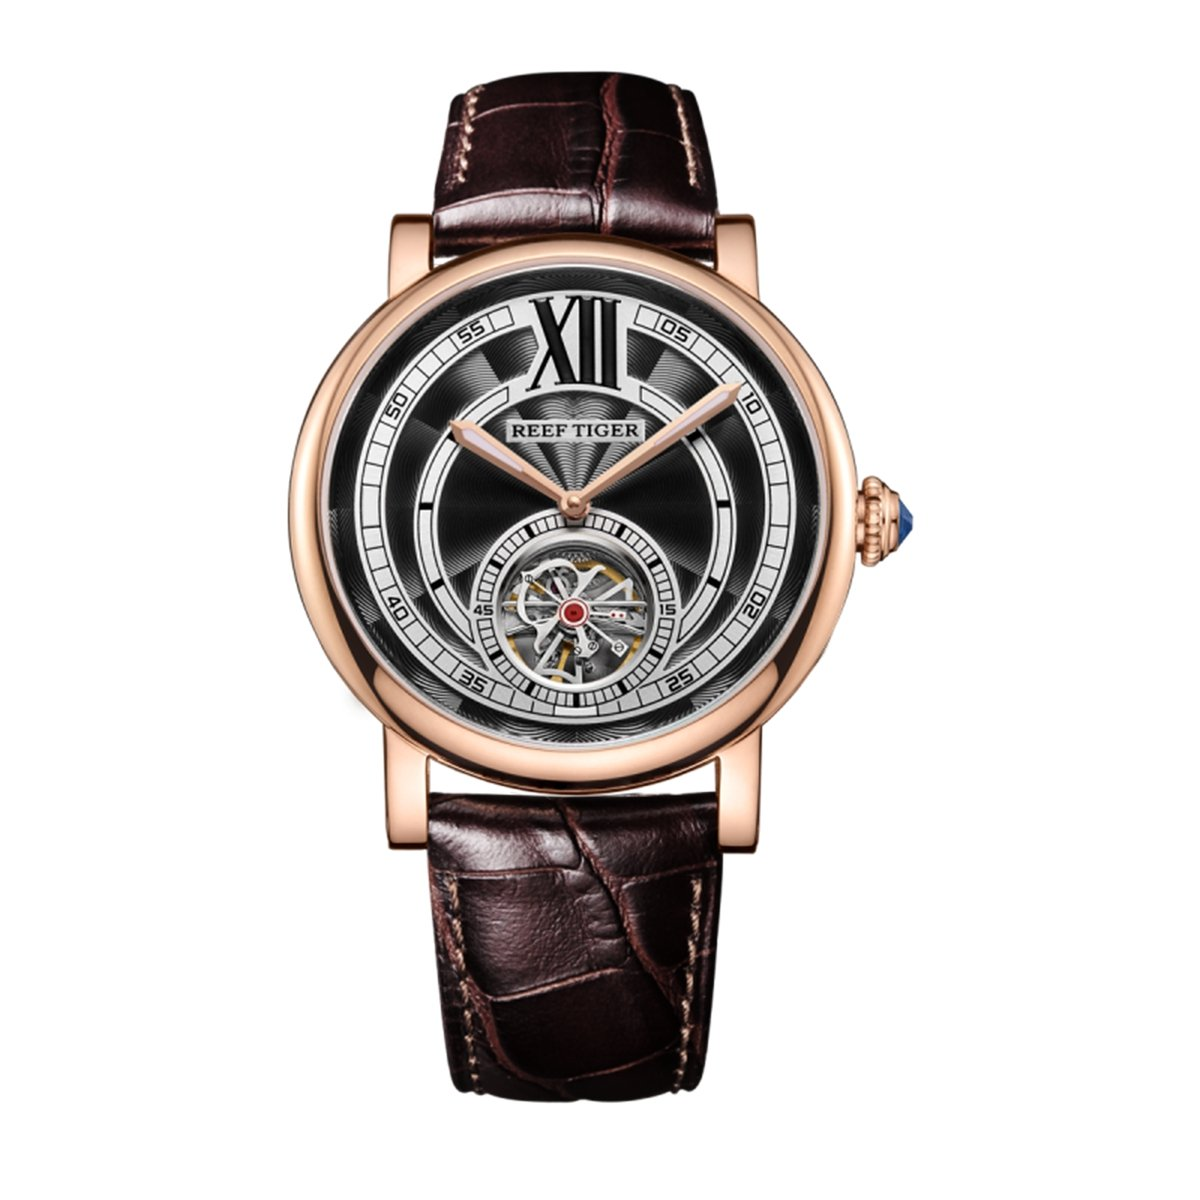 Reef Tiger Casual Automatic Watches for Men Rose Gold Leather Strap Tourbillon Watches RGA192 (RGA192-PBS)